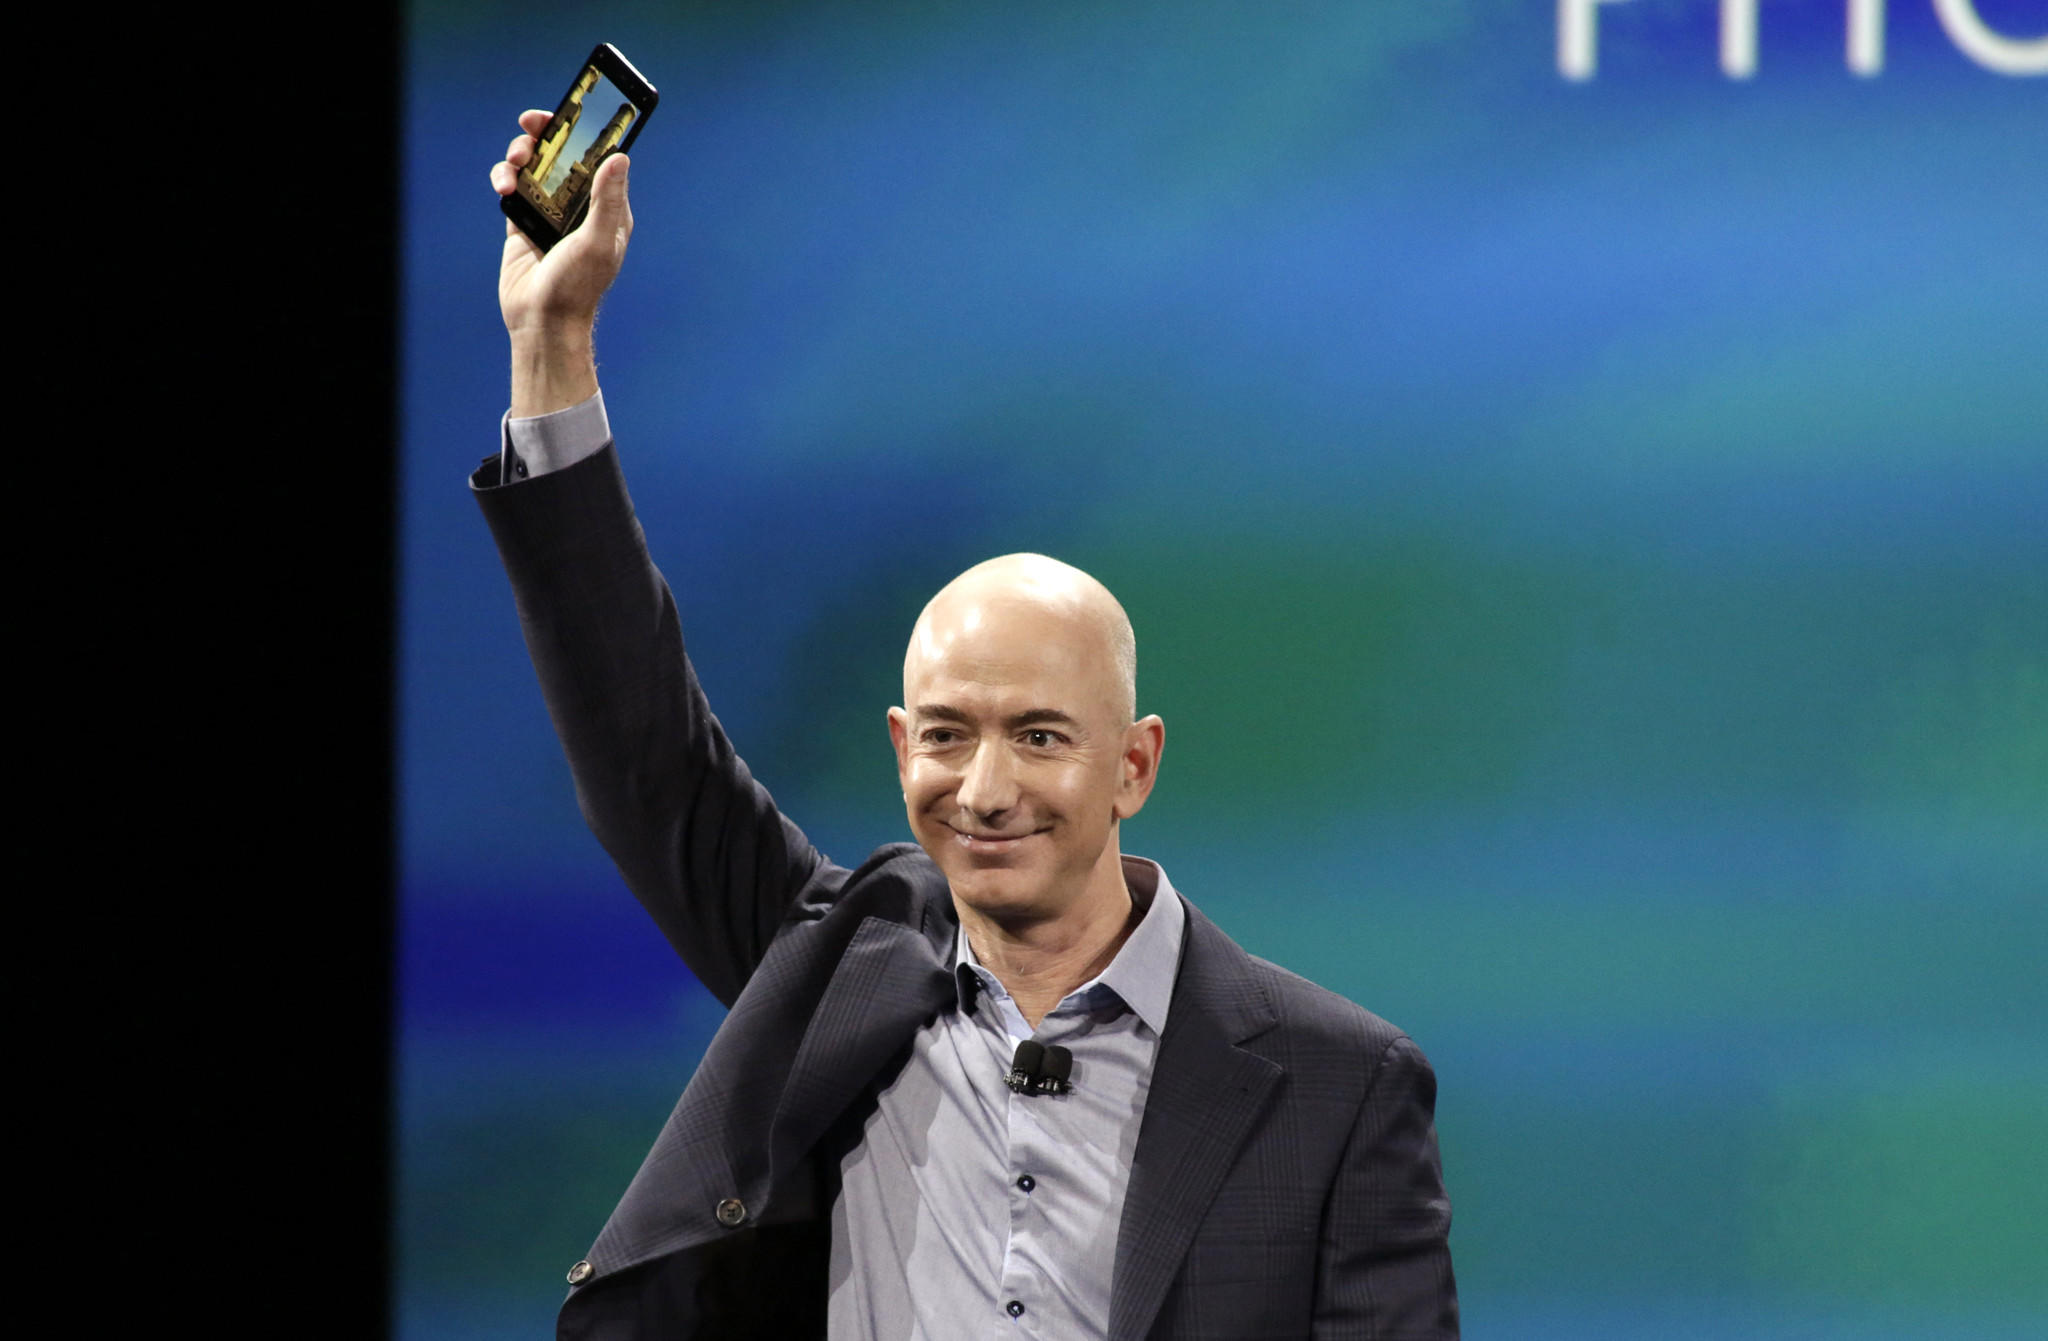 Amazon CEO Jeff Bezos shows off his company's new smartphone, the Fire Phone, at a news conference in Seattle, Washington.